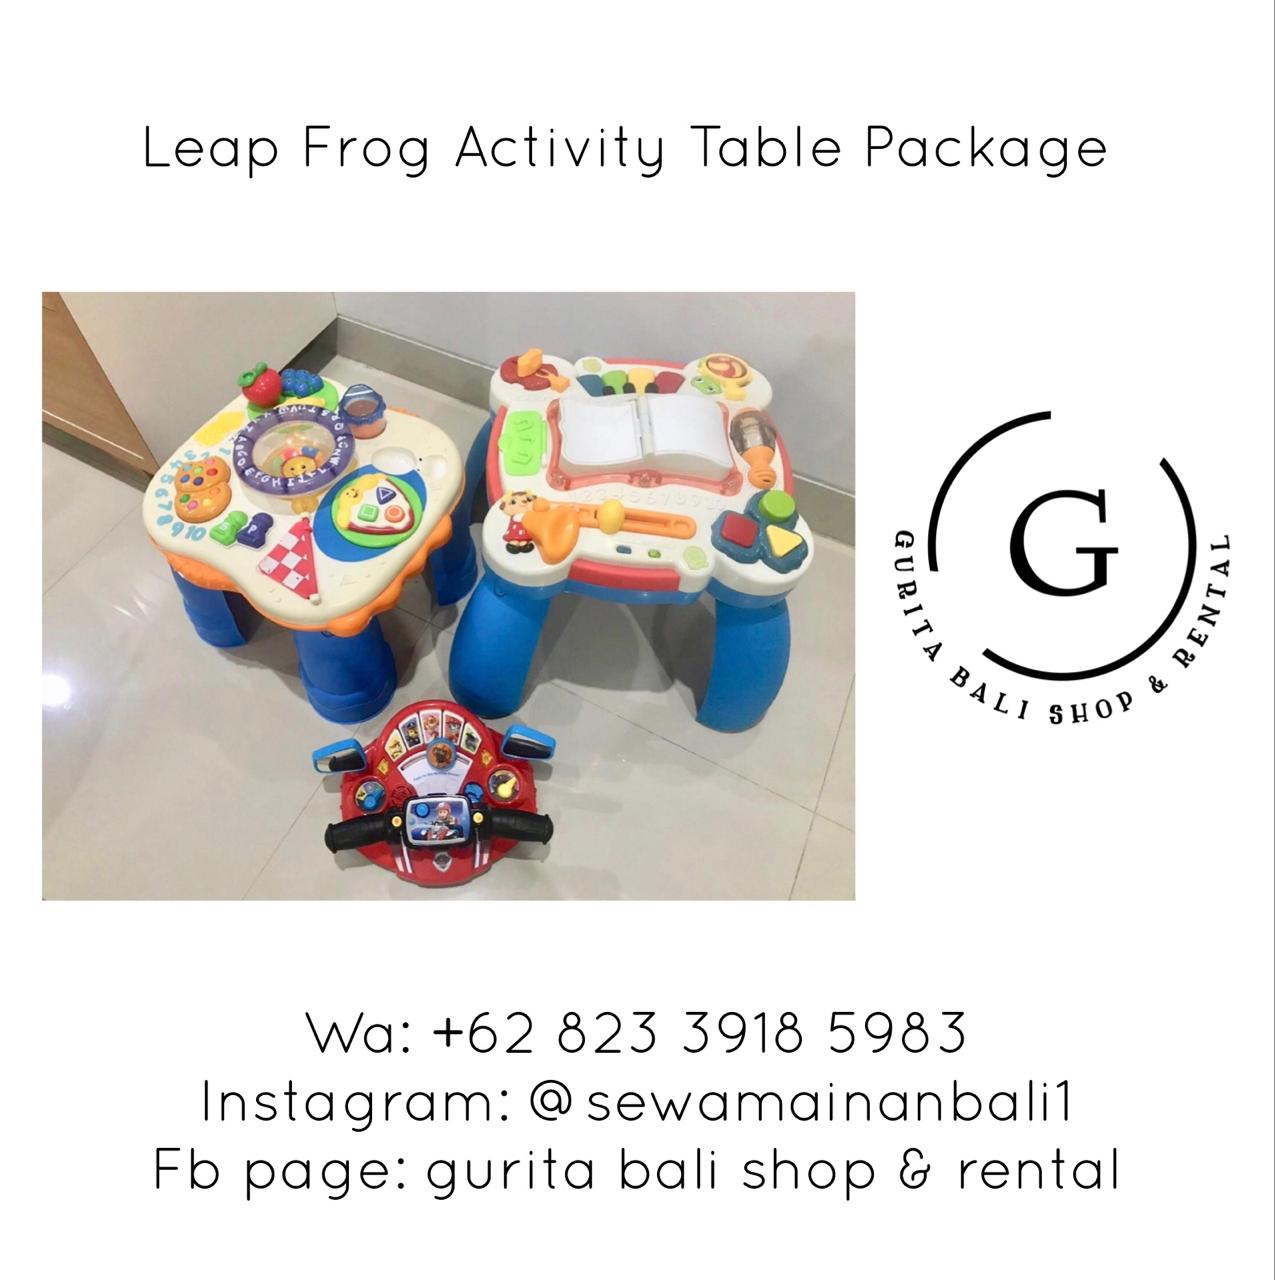 LEAP FROG ACTIVITY TABLE PACKAGE